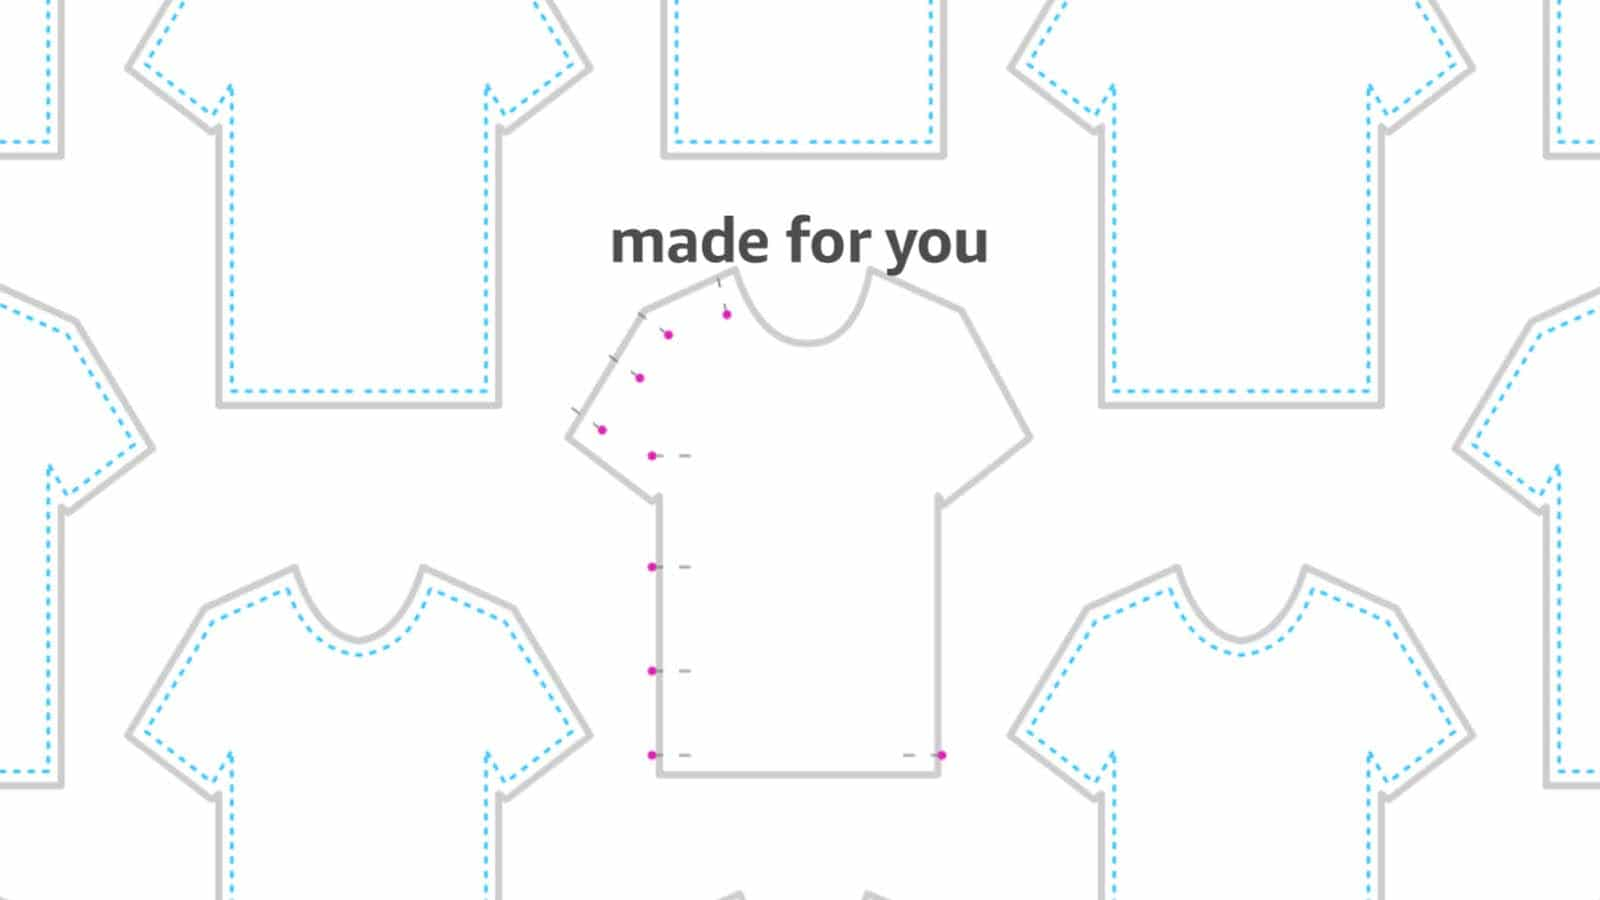 amazon made for you clothing